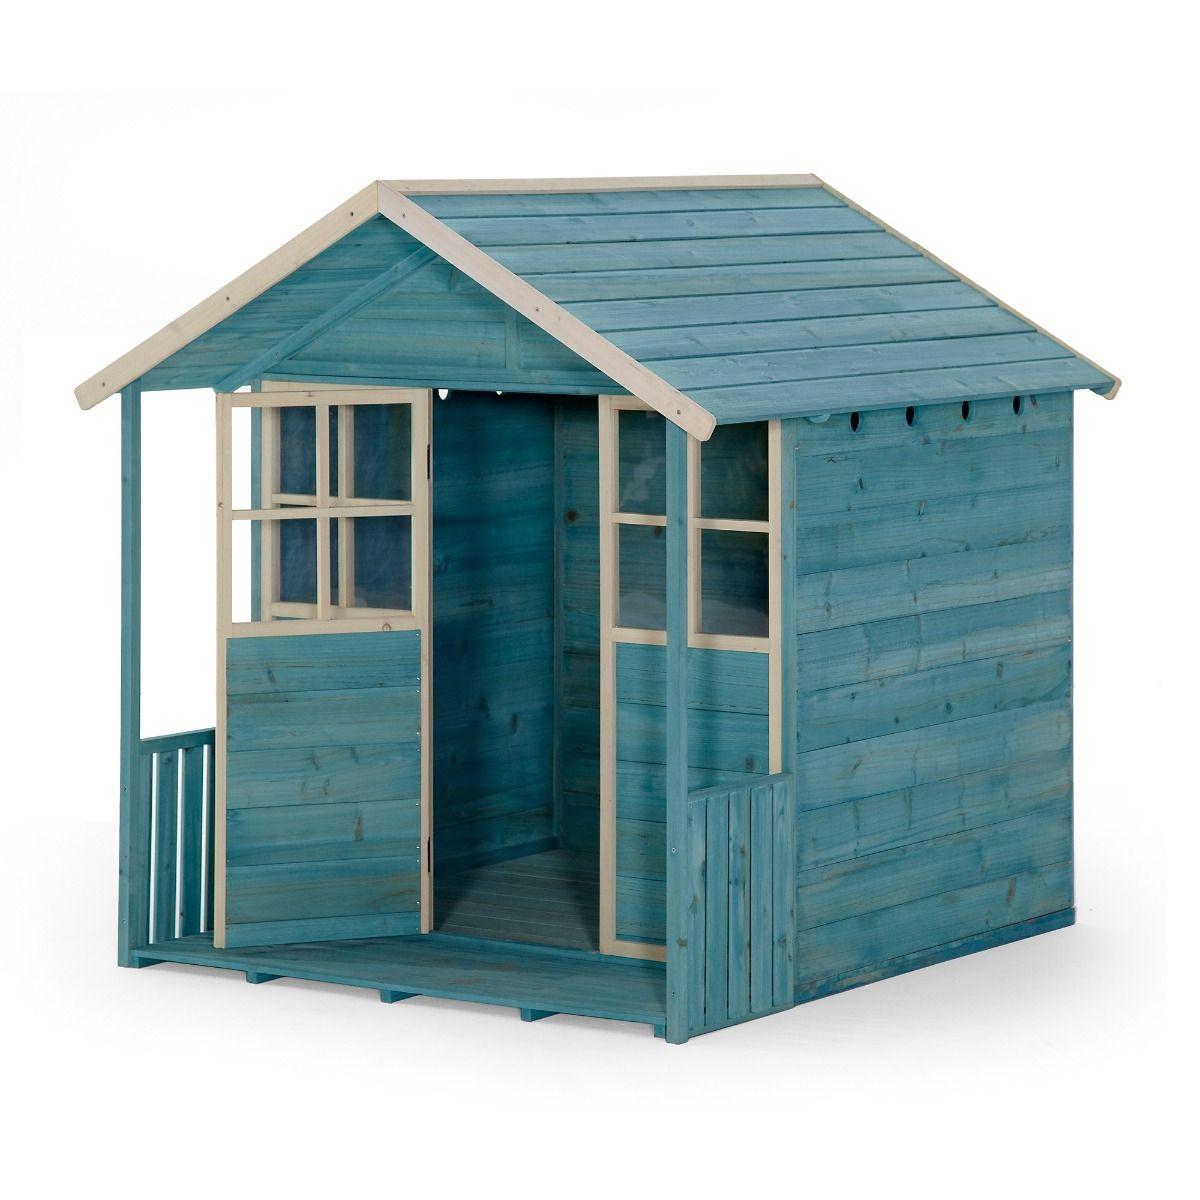 Plum Wooden Cubby House – Teal